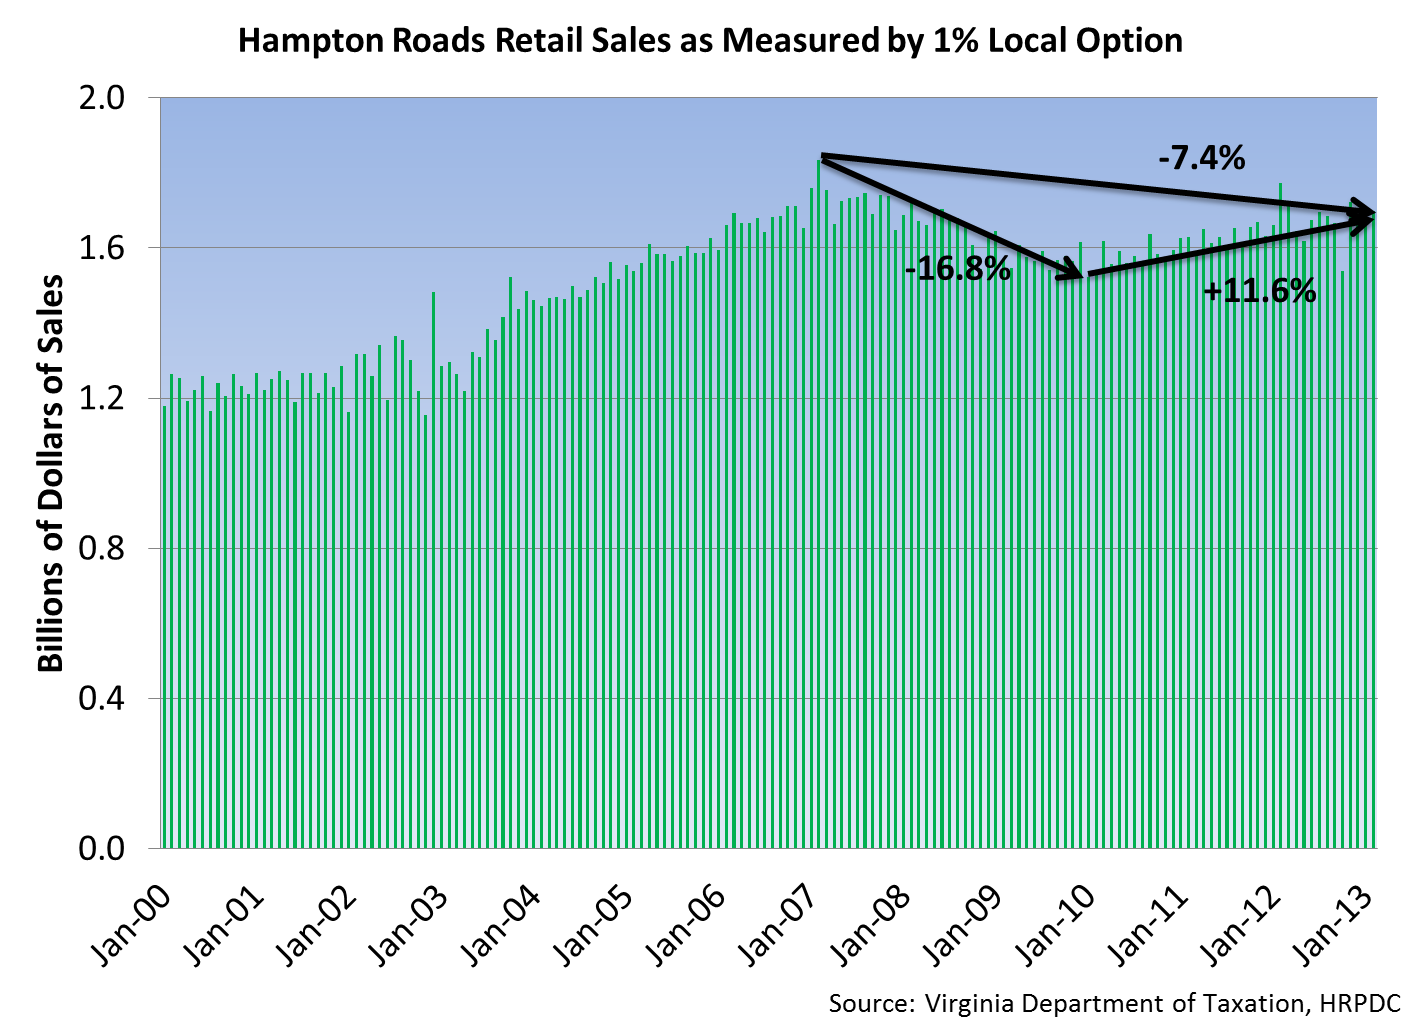 Hampton Roads Retail Sales as Measured by 1% Local Option